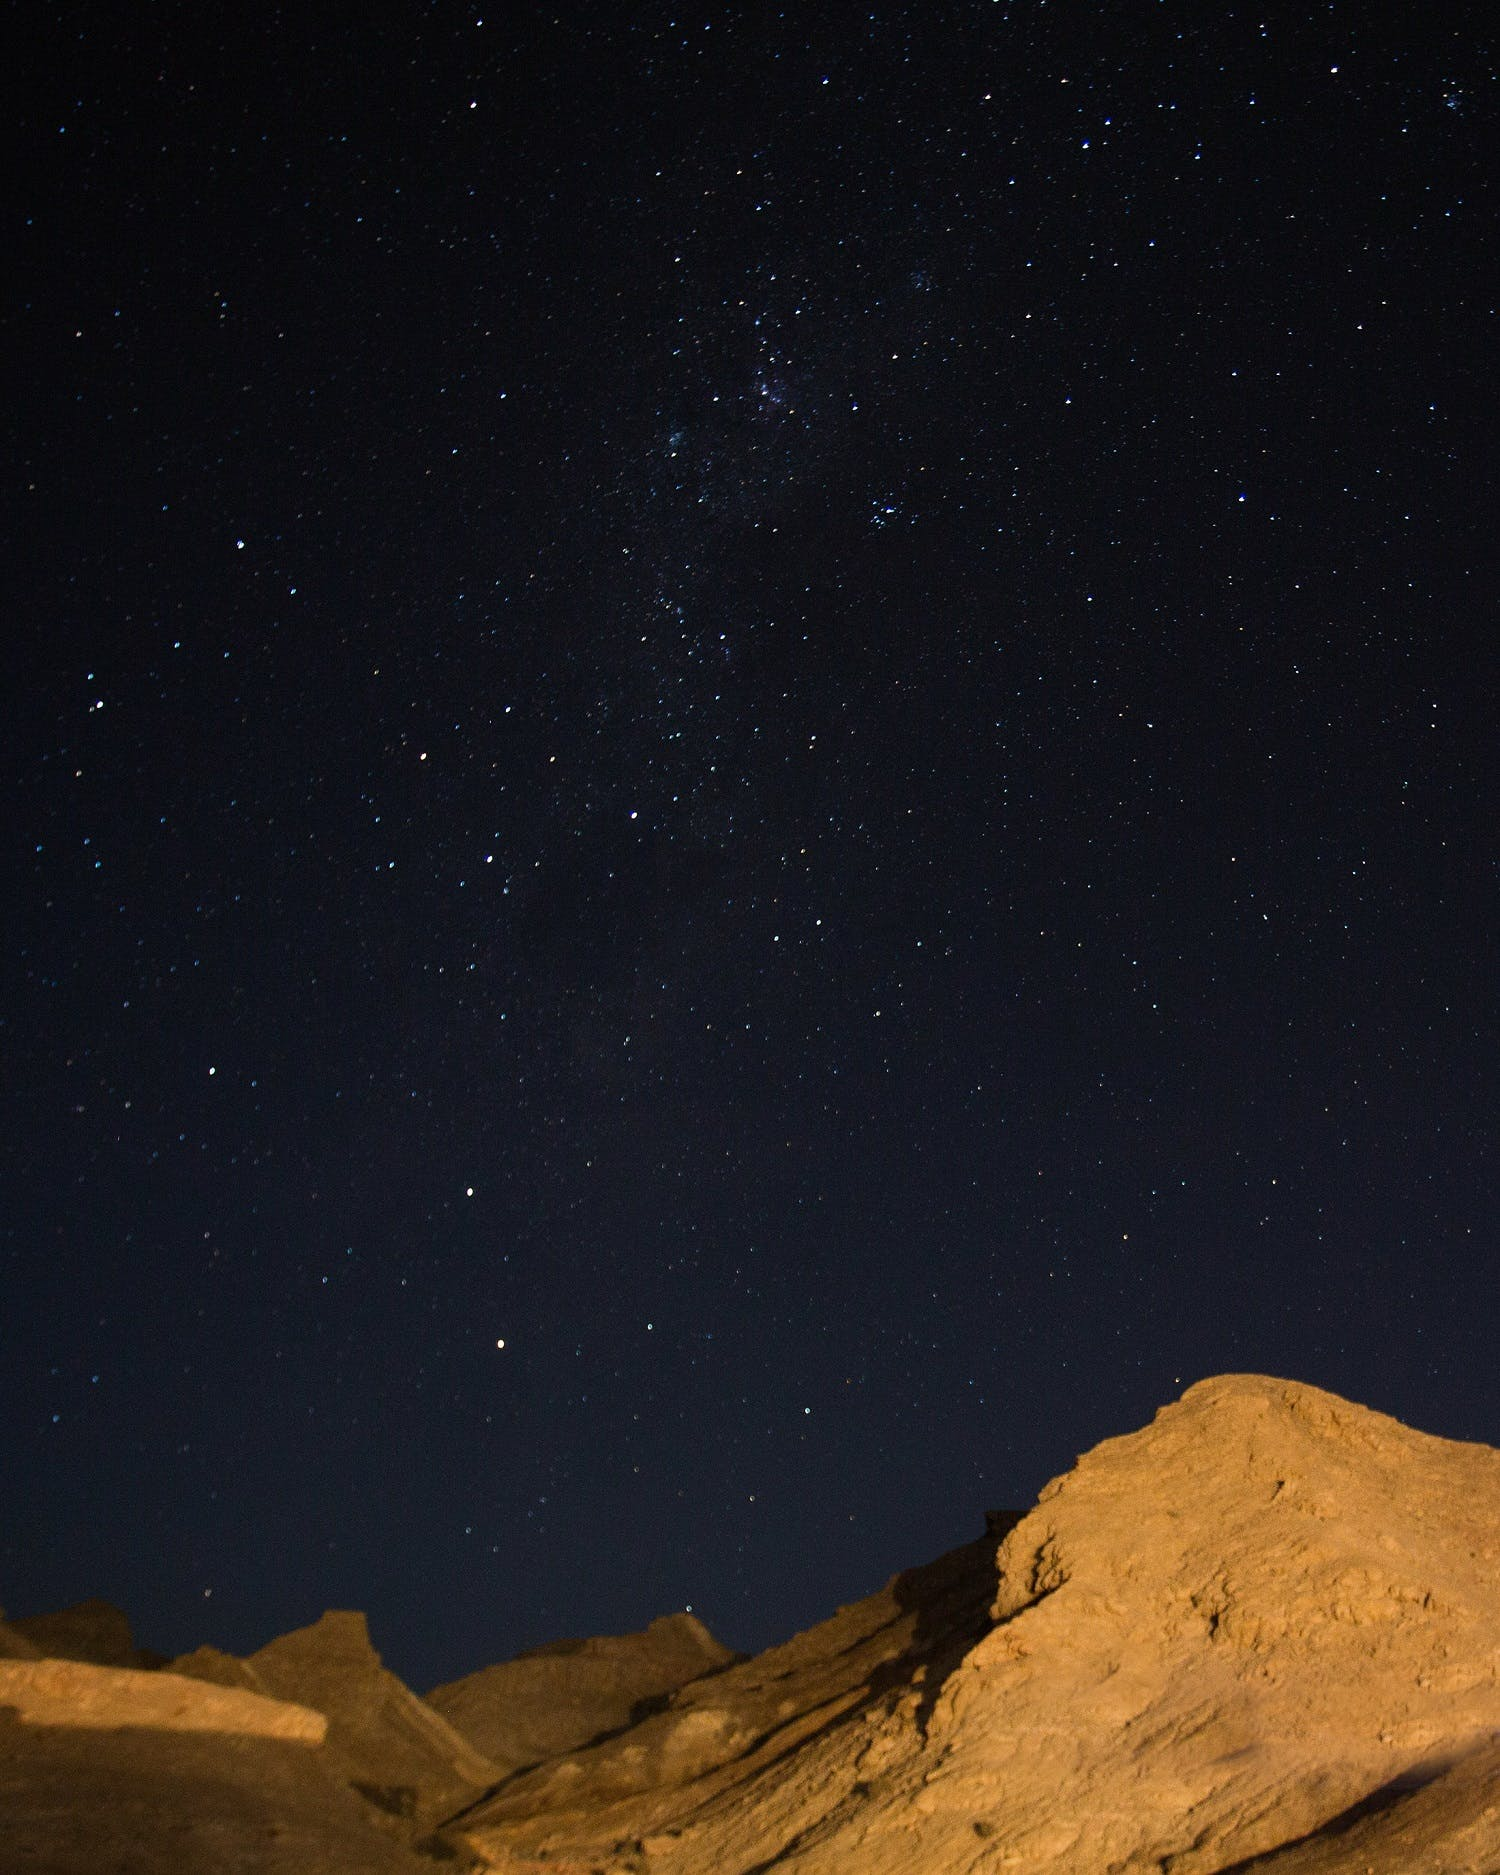 travel hobby ideas - stargazing